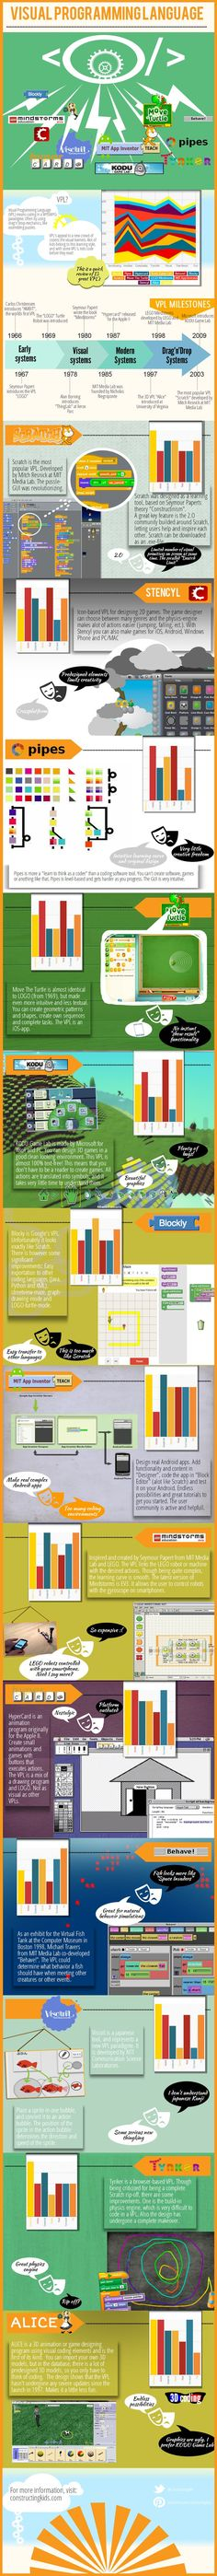 Educational infographic : Visual Programming Language explained with 13 examples.